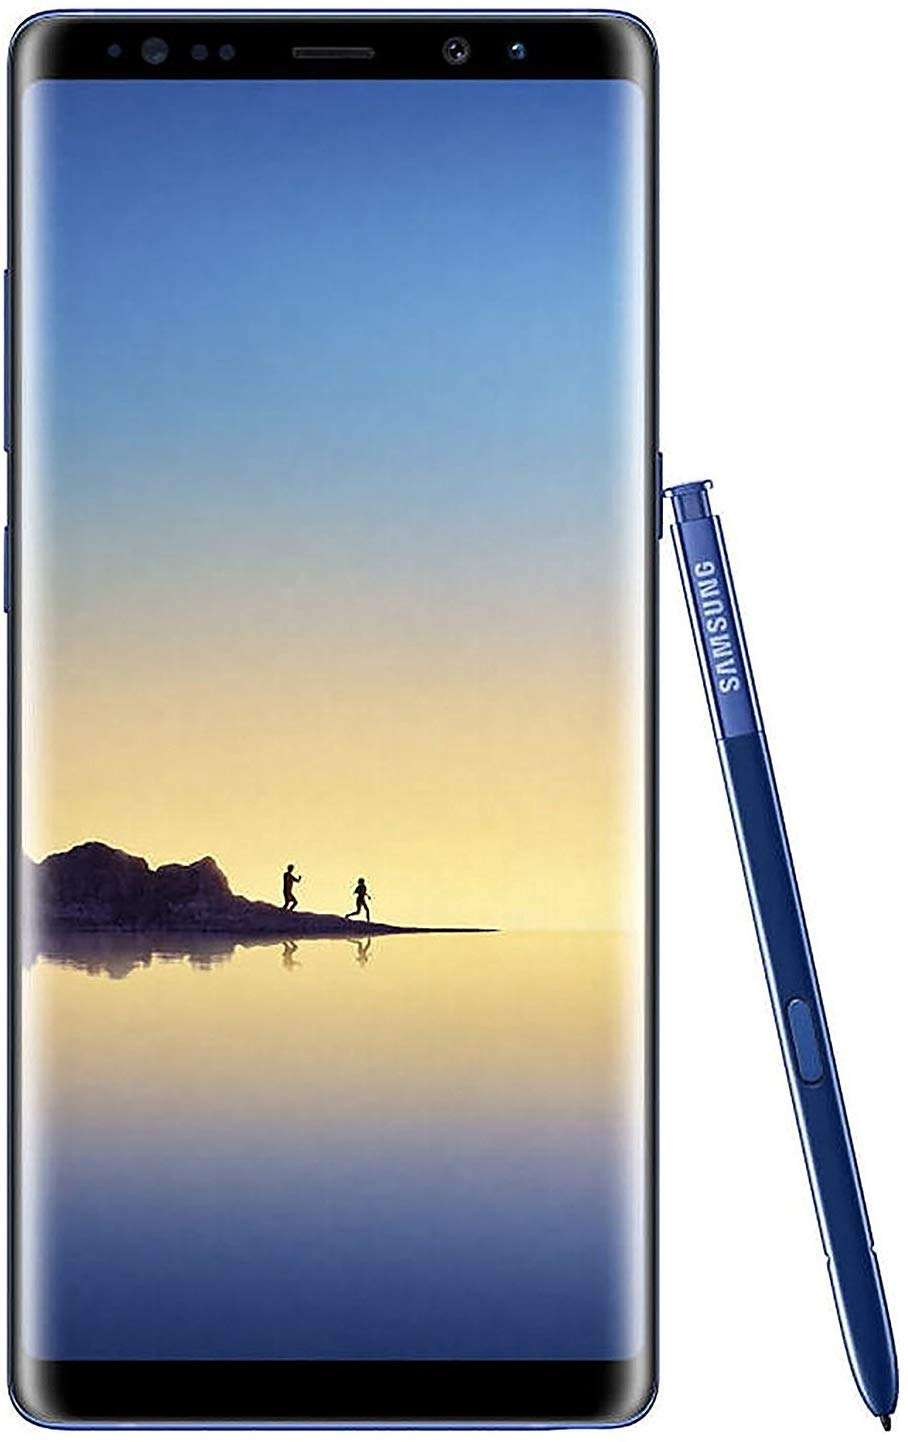 Samsung Galaxy Note 8 Dual SIM - 256GB, 6GB RAM, 4G LTE, Deep Sea Blue